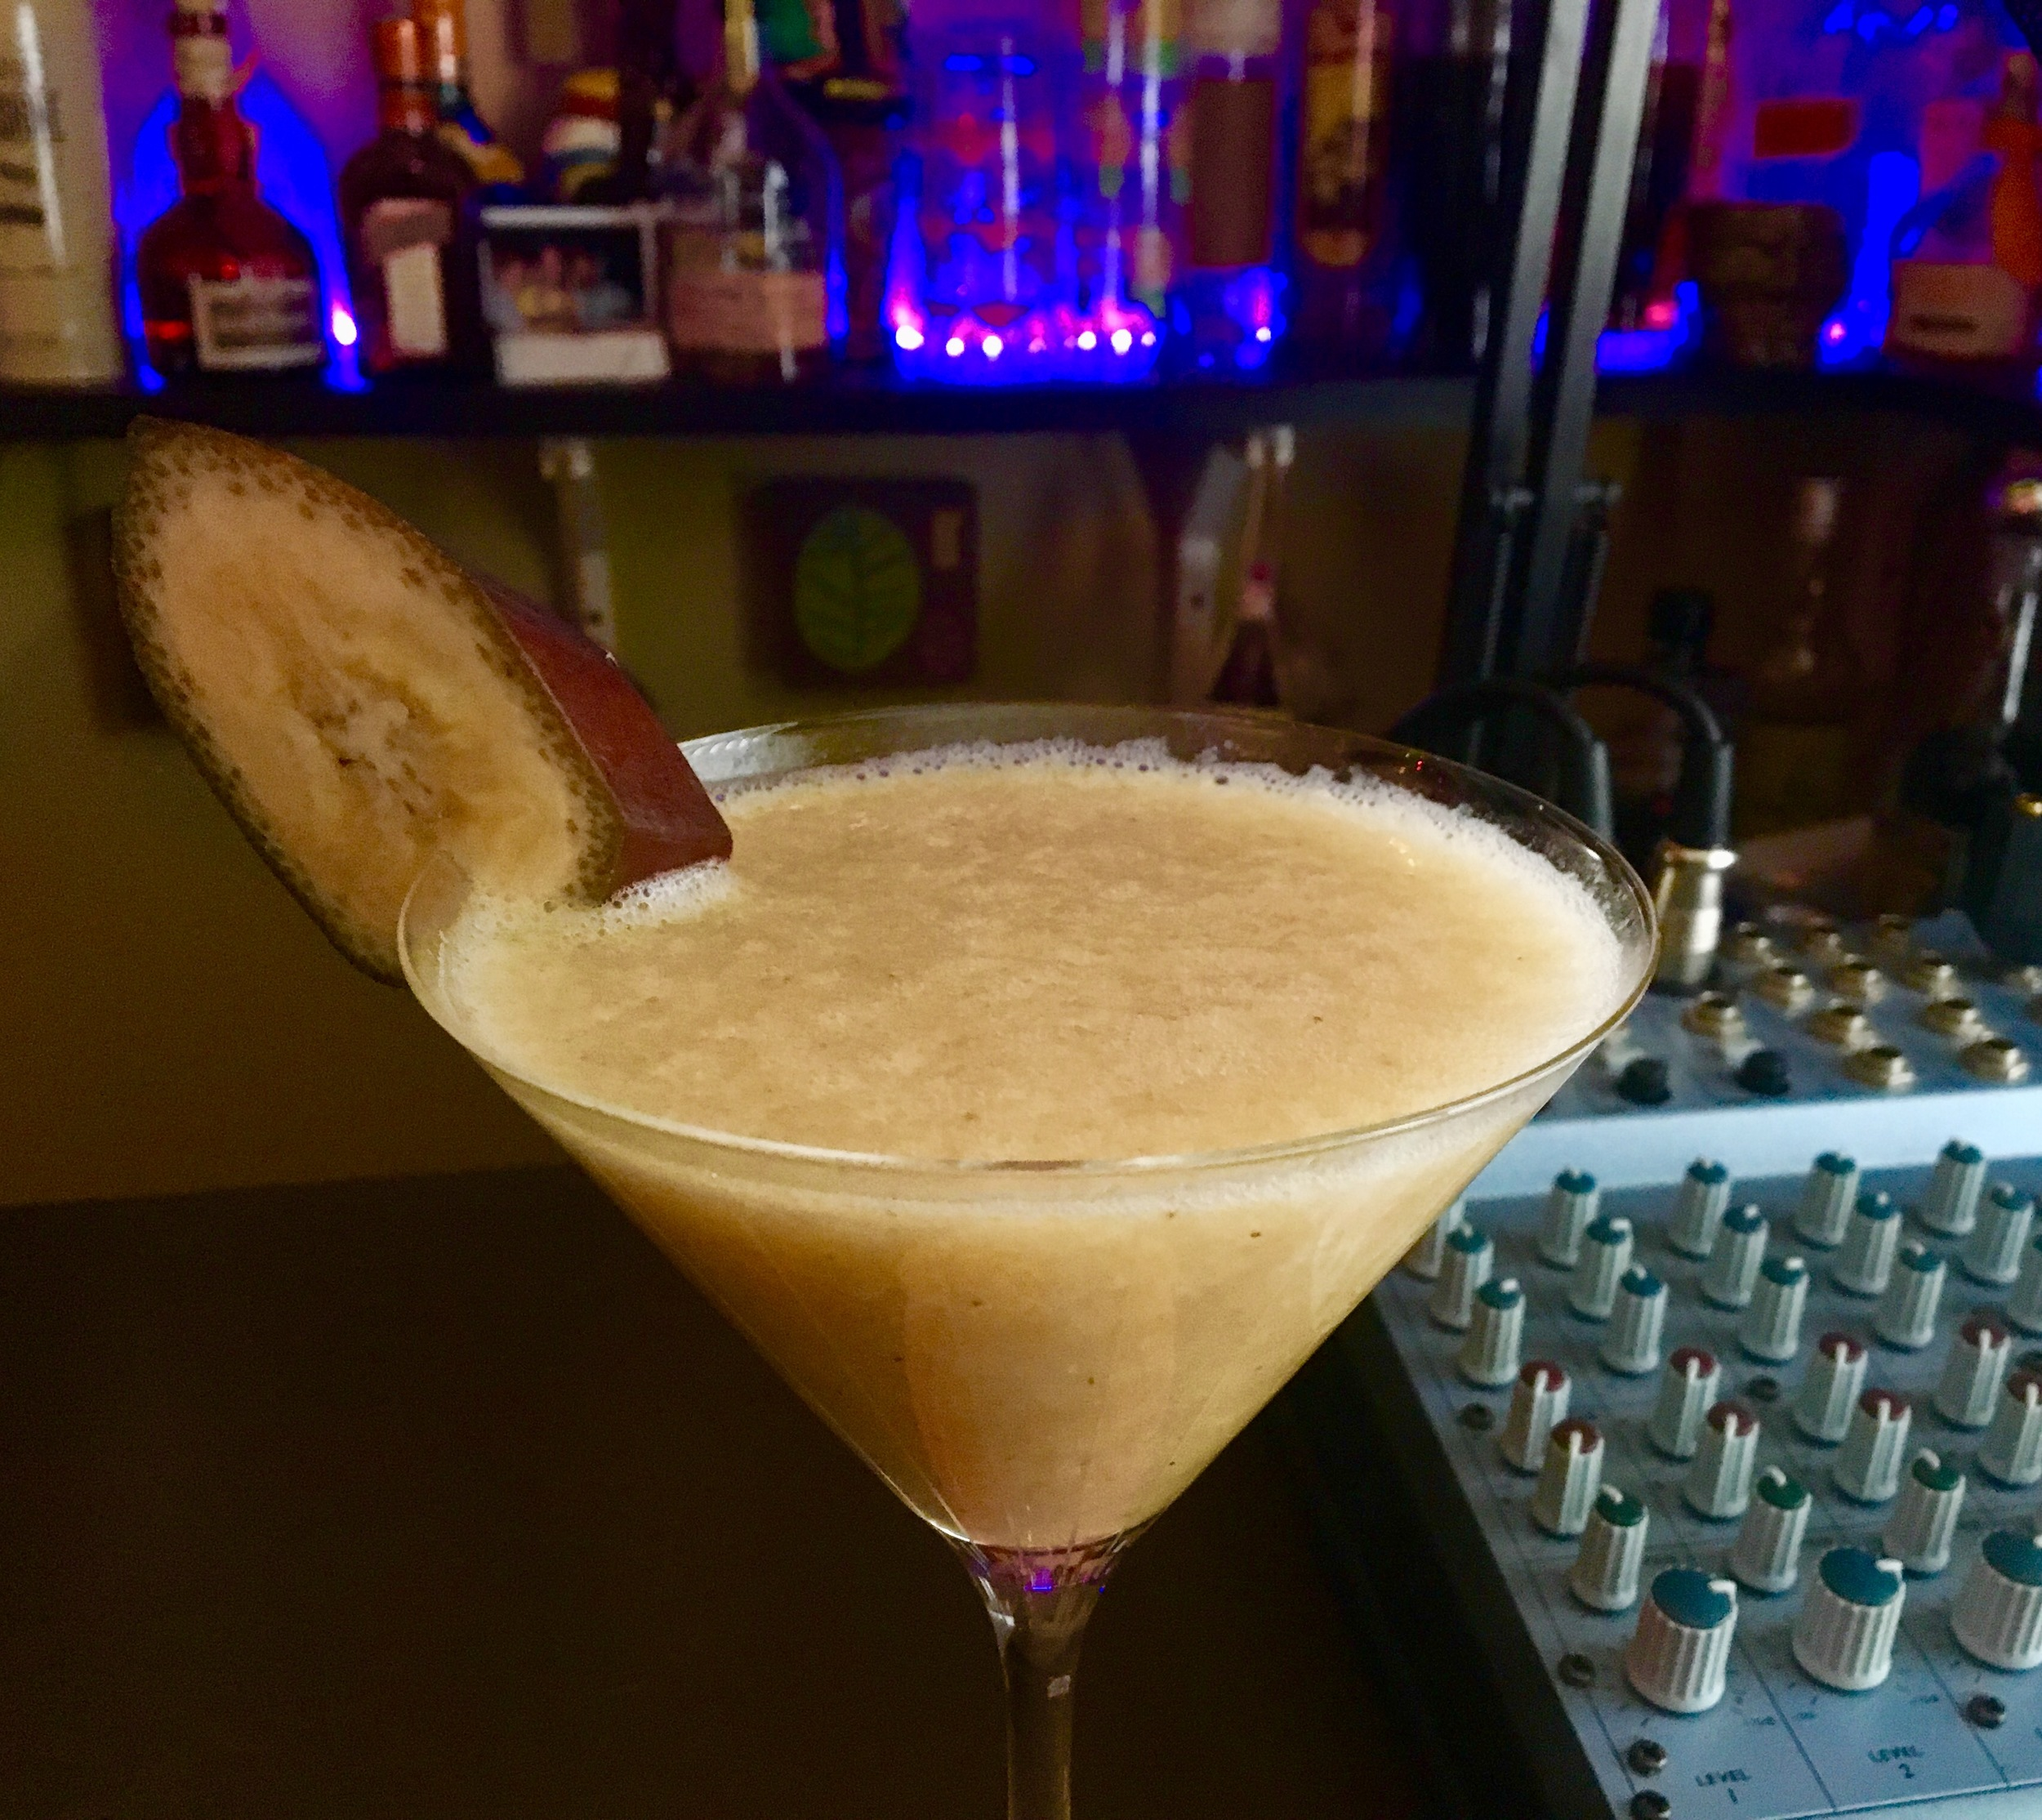 A REAL banana daiquiri is nothing more than rum, banana, lime juice, ice and sugar. Listen to the show for the recipe or get the app from Beachbum Berry, look for Total Tiki in any app store.